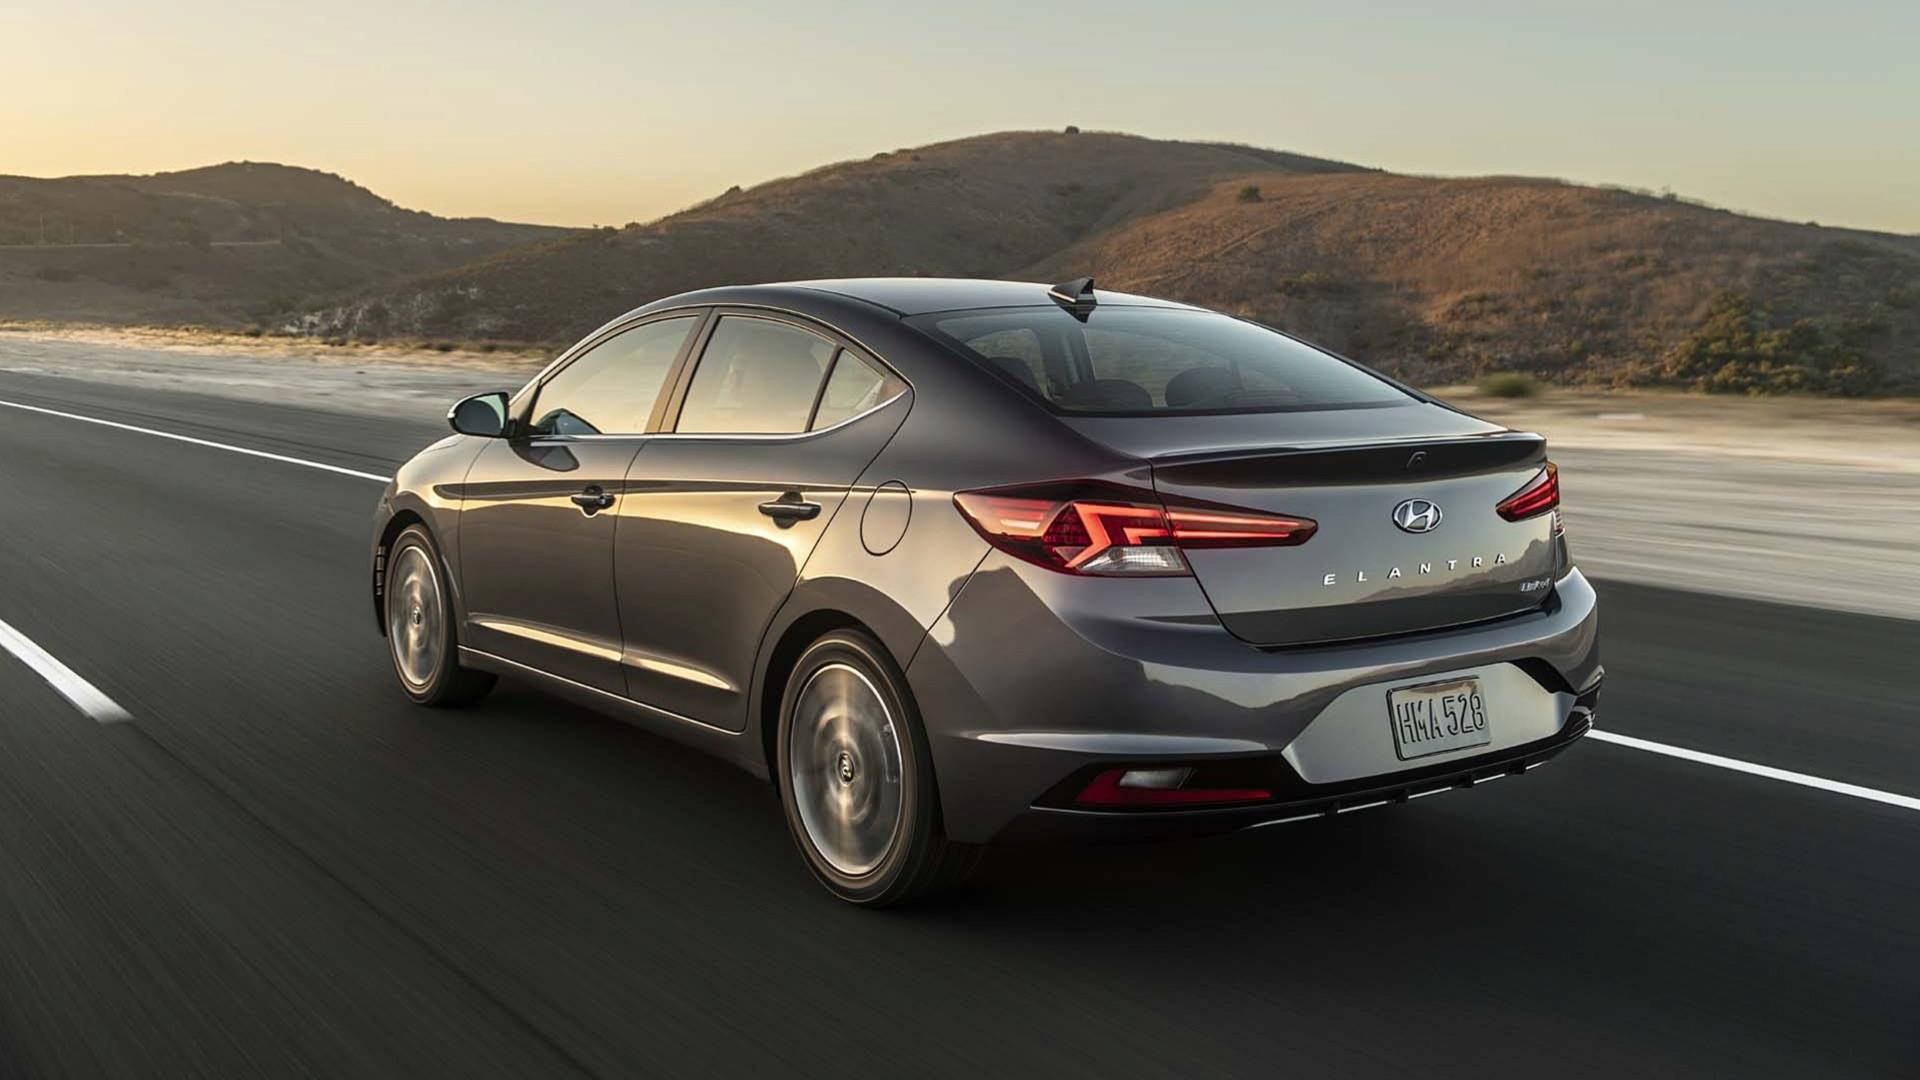 87 All New 2019 Hyundai Elantra Sedan Picture